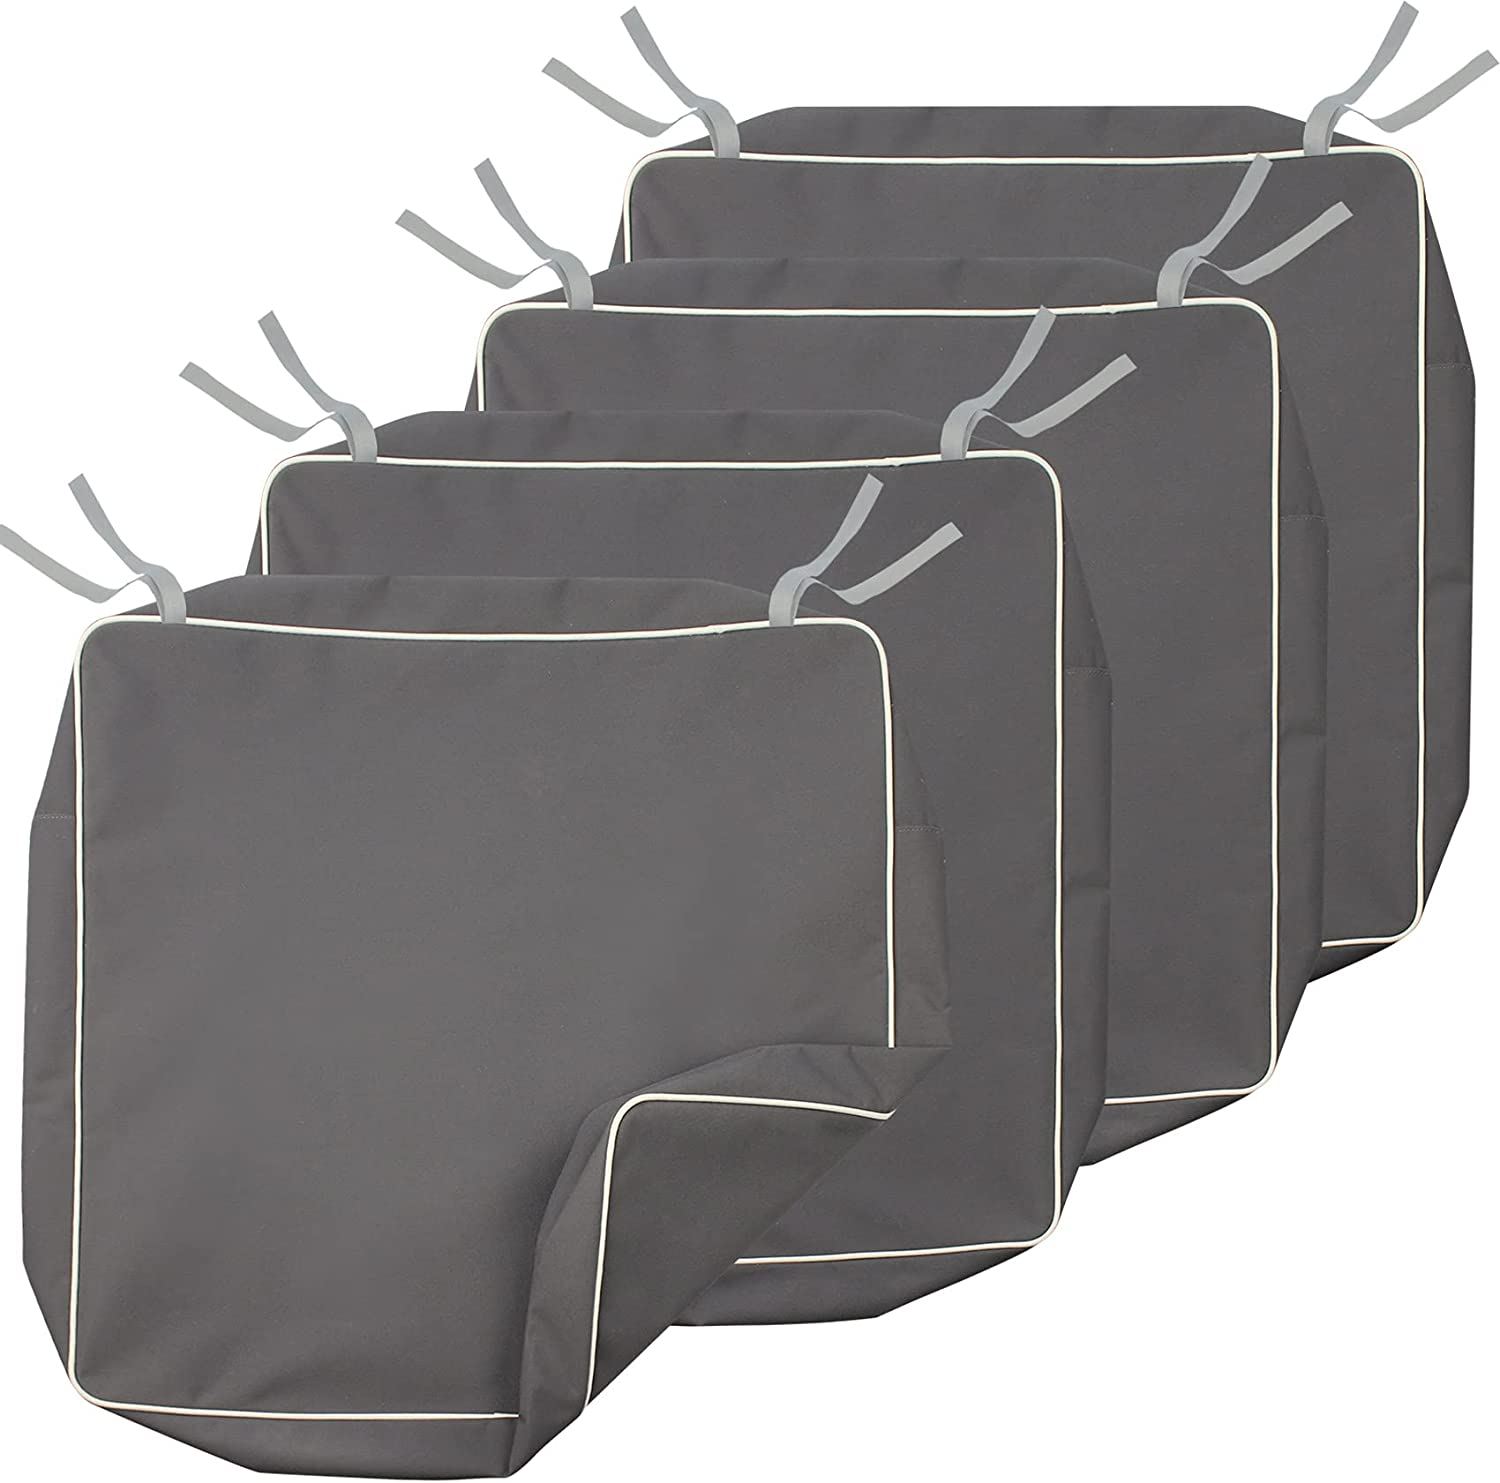 Porch Shield Square Patio Chair Seat Cushion Covers 21 x 21 Inch, Outdoor Waterproof Cushion Slip Covers 4 Pack, Grey